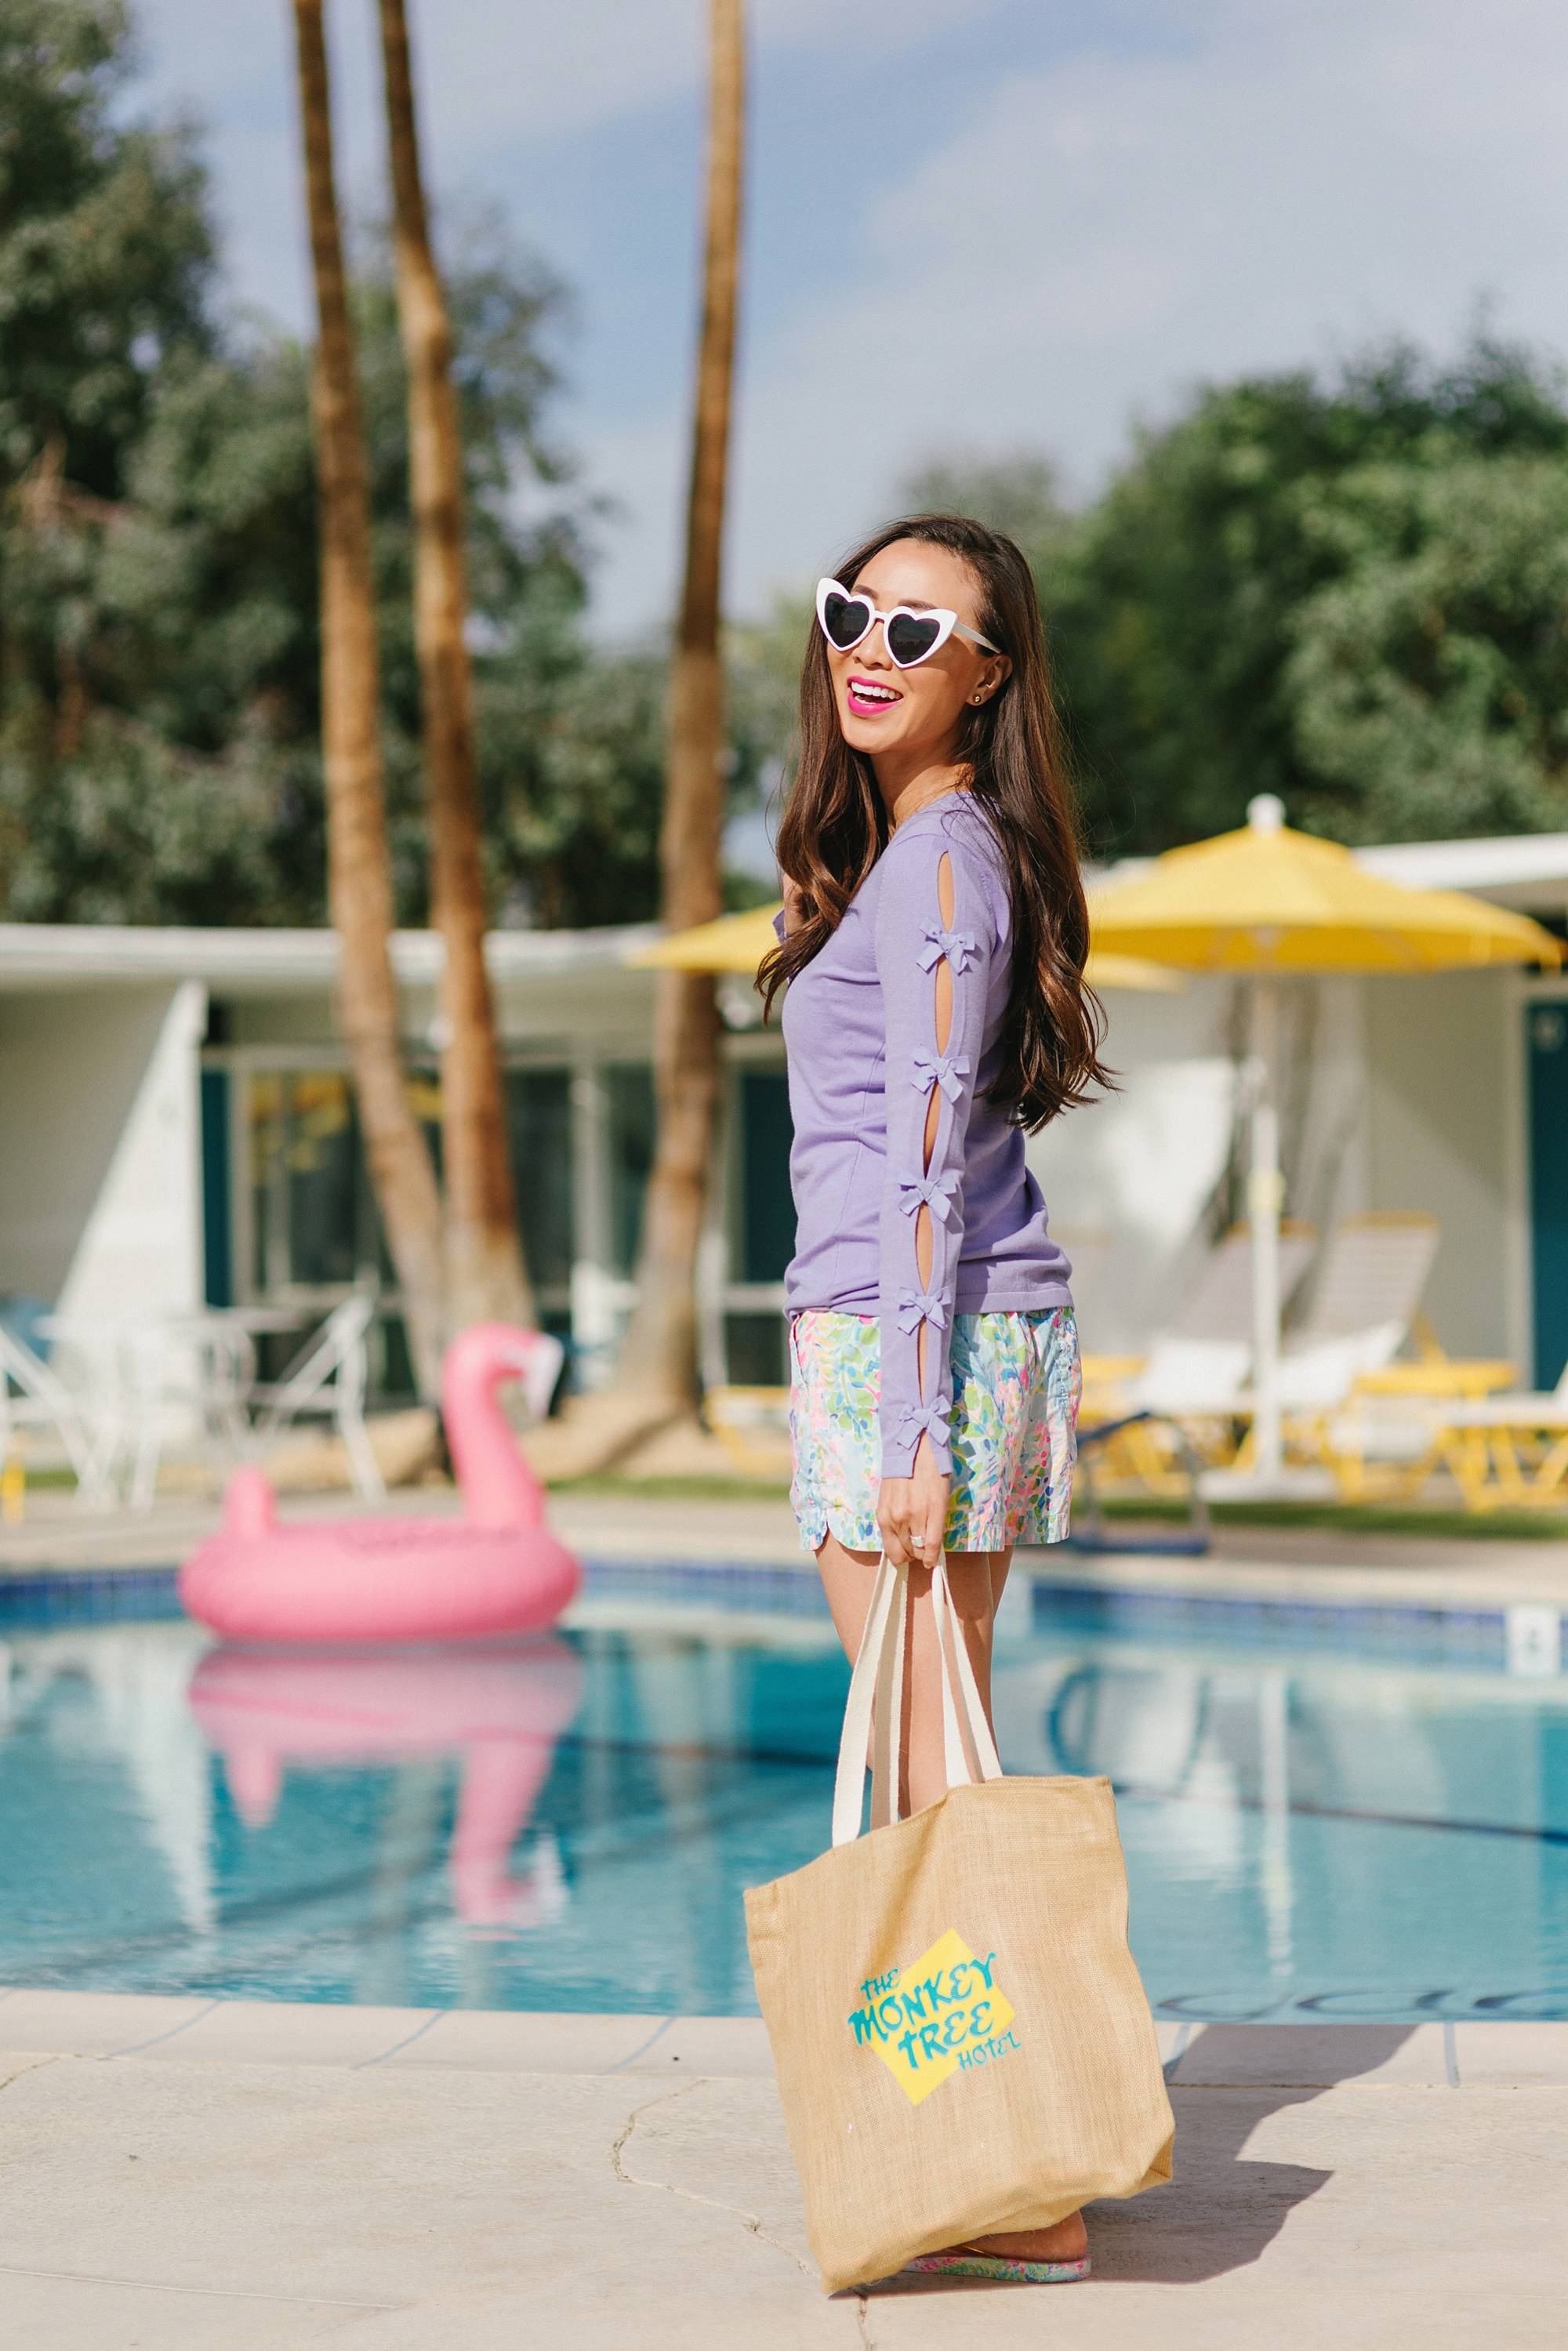 the monkey tree inn Palm Springs wearing Lilly pulitzer on phoenix travel lifestyle blogger Diana Elizabeth holding a tote by the pool and white heart sunnies